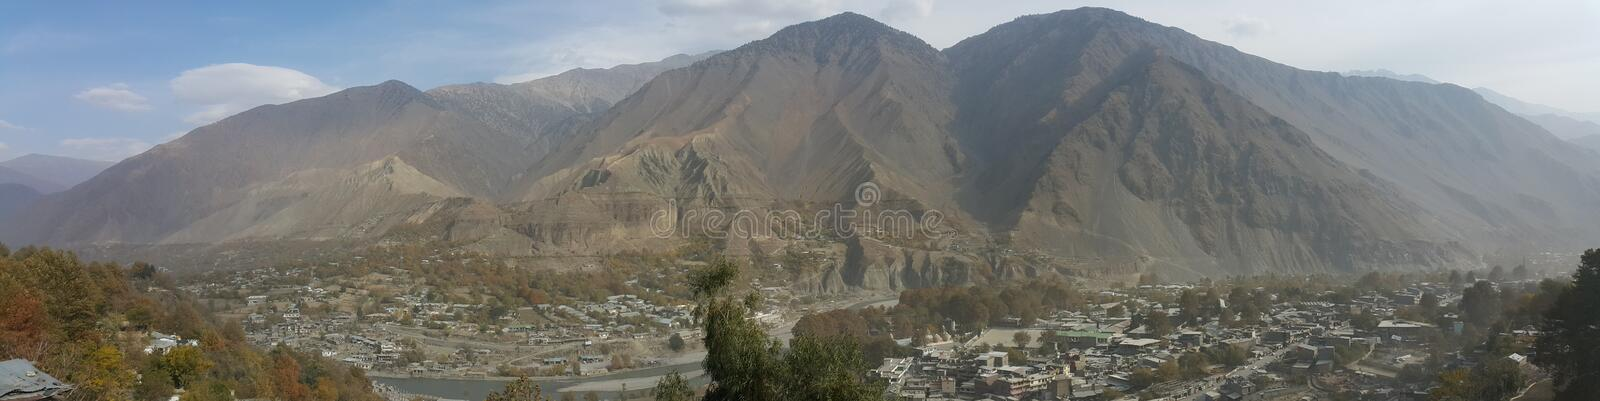 Chitral images stock